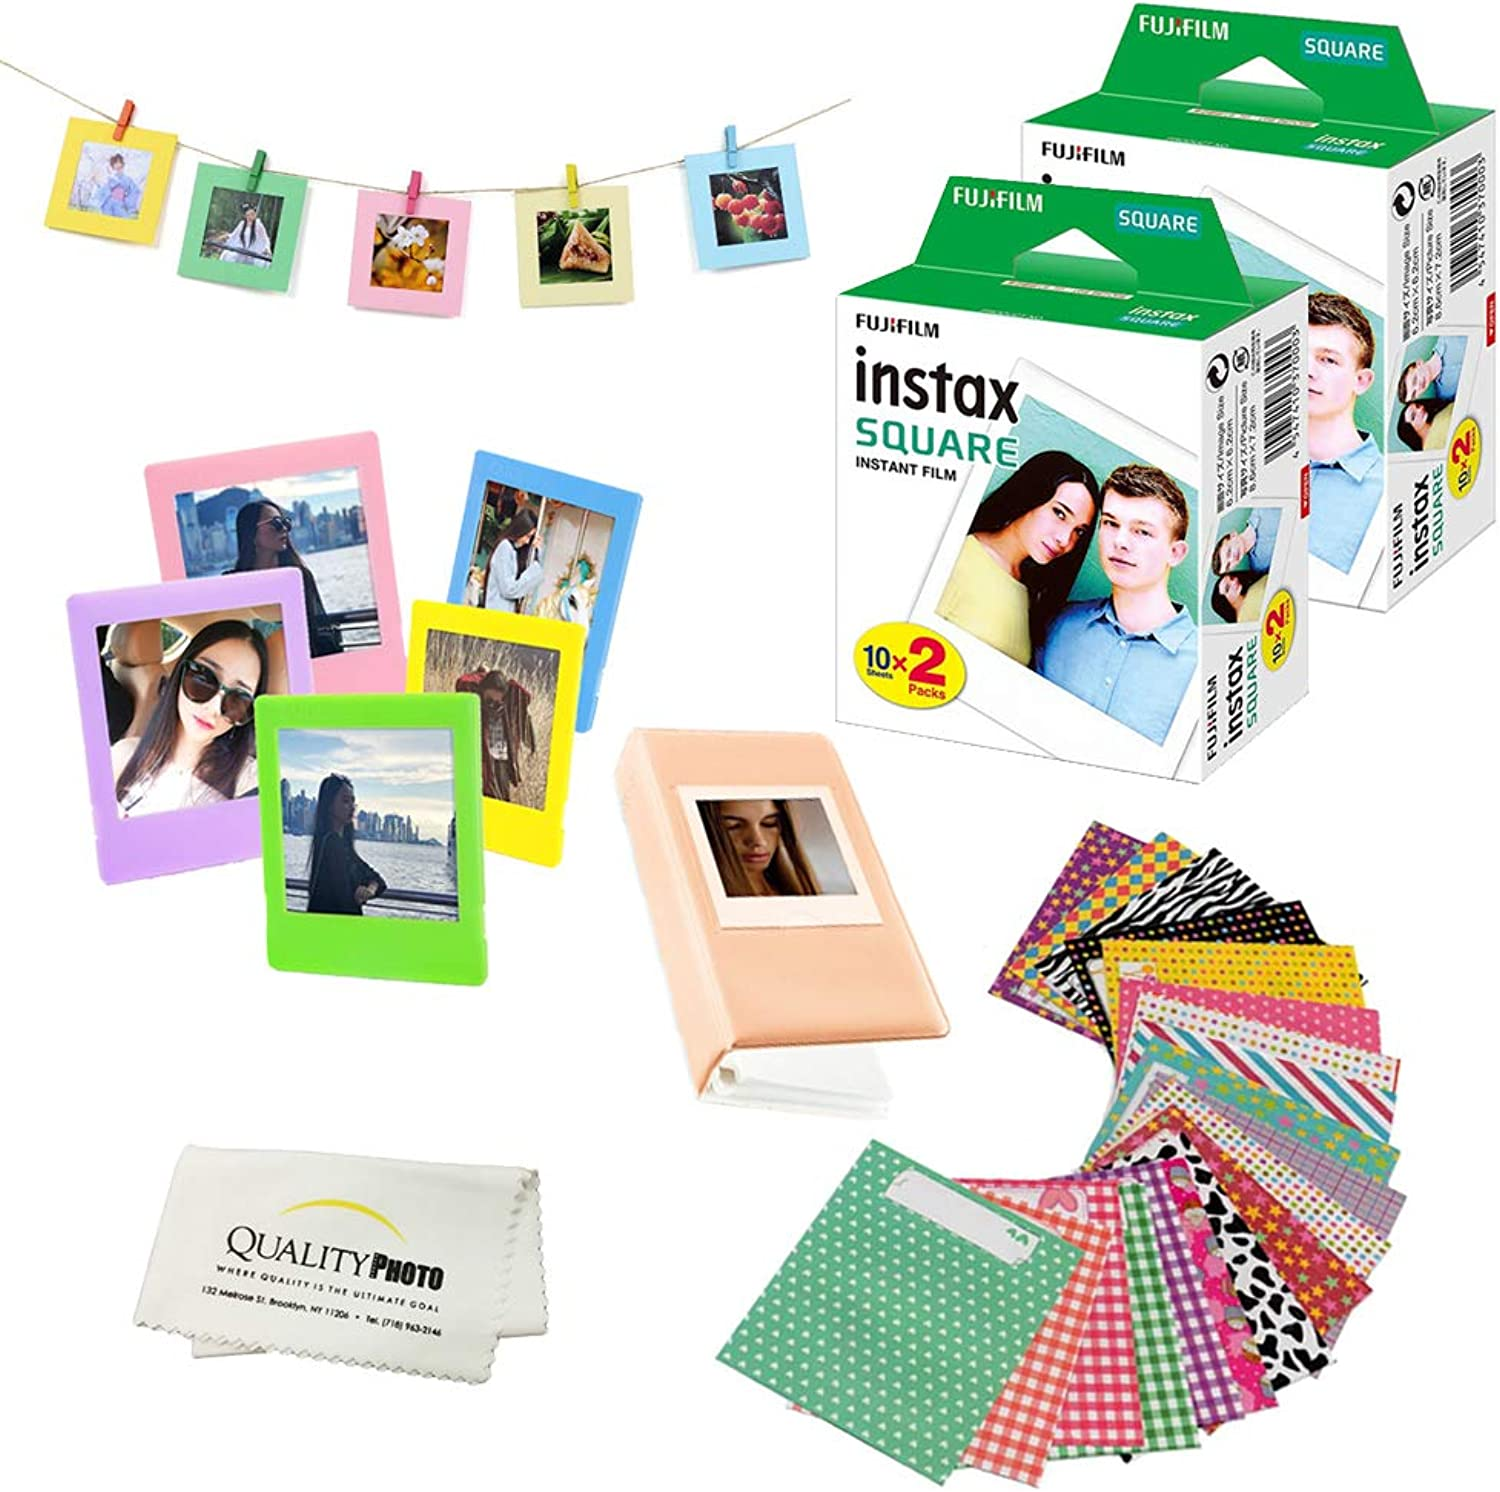 Fuji SQ6 Instax Square Accessory Bundle. 40 Fuji Square Films+5 Plastic Frames for Prints,10 Hanging Frames,20 Stickers to Decorate Your Prints,Album+Quality Photo Microfiber Cloth